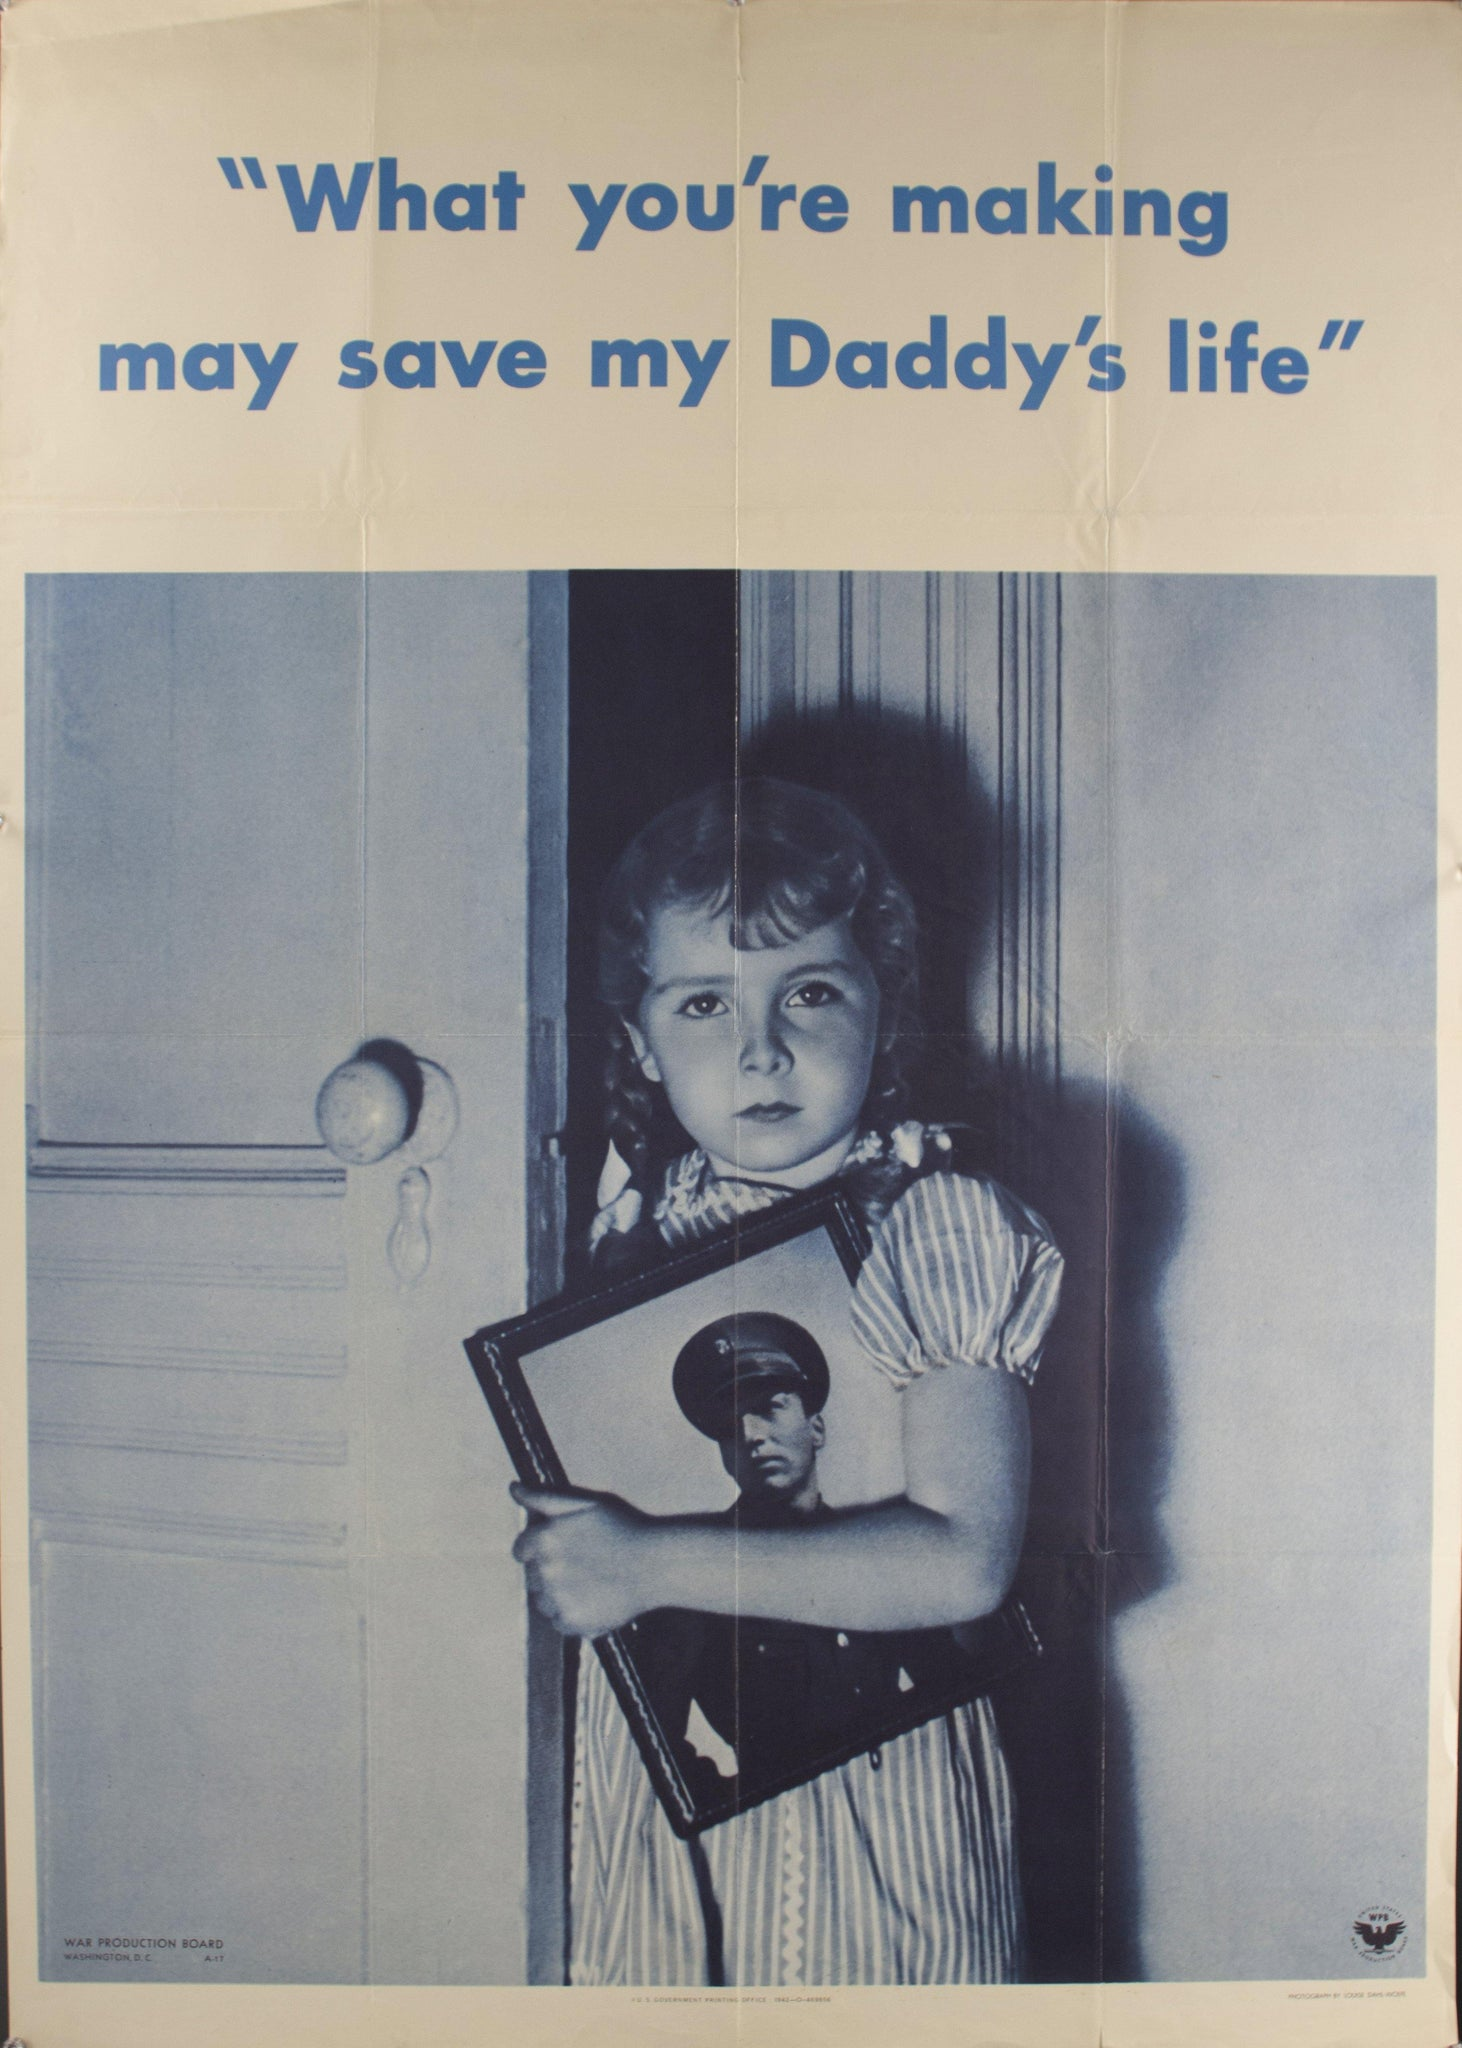 1942 What You're Making May Save My Daddy's Life